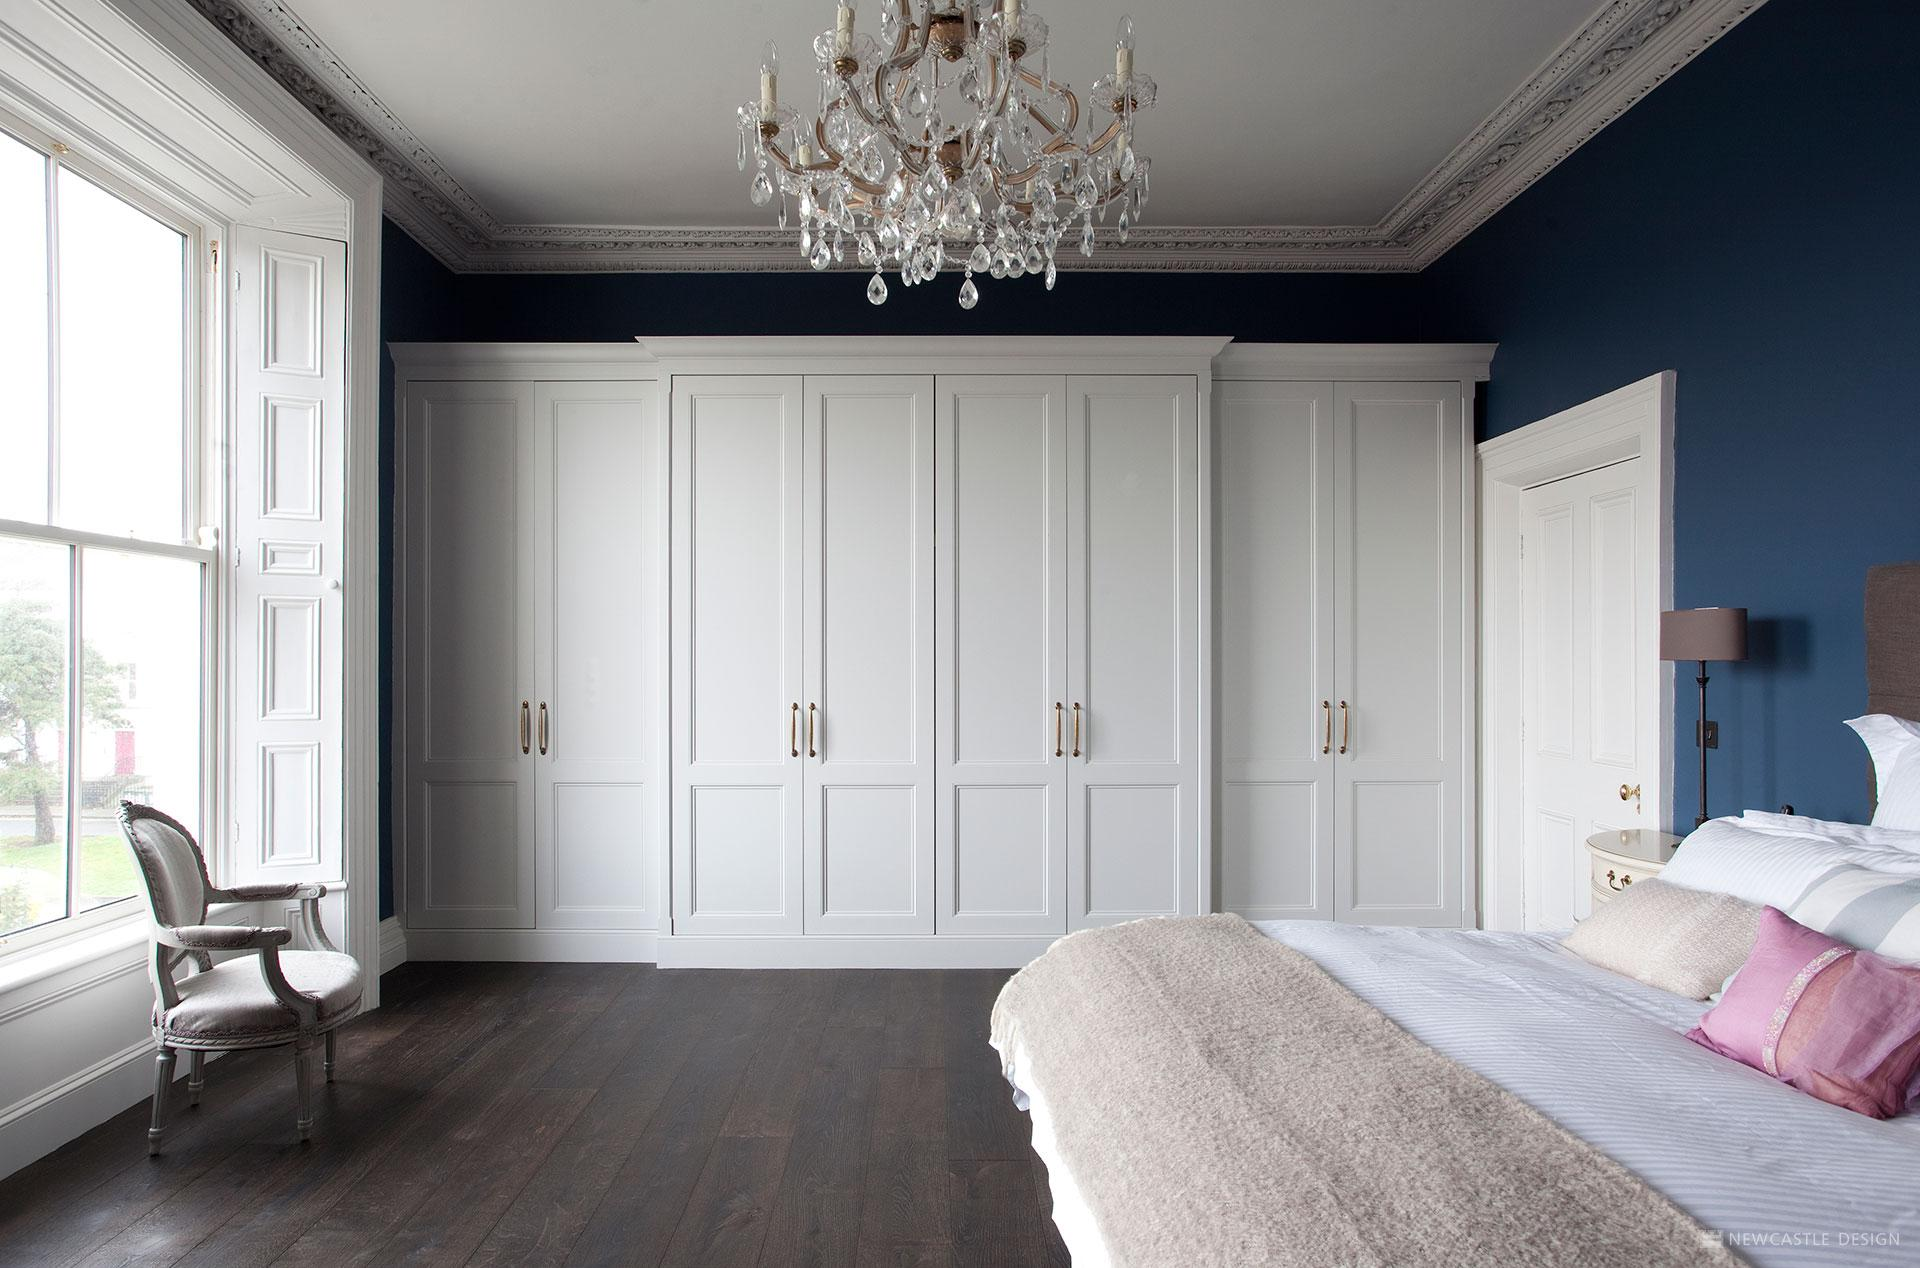 wardrobes examples wardrobe bespoke gallery bedroom joat our london of traditional fitted